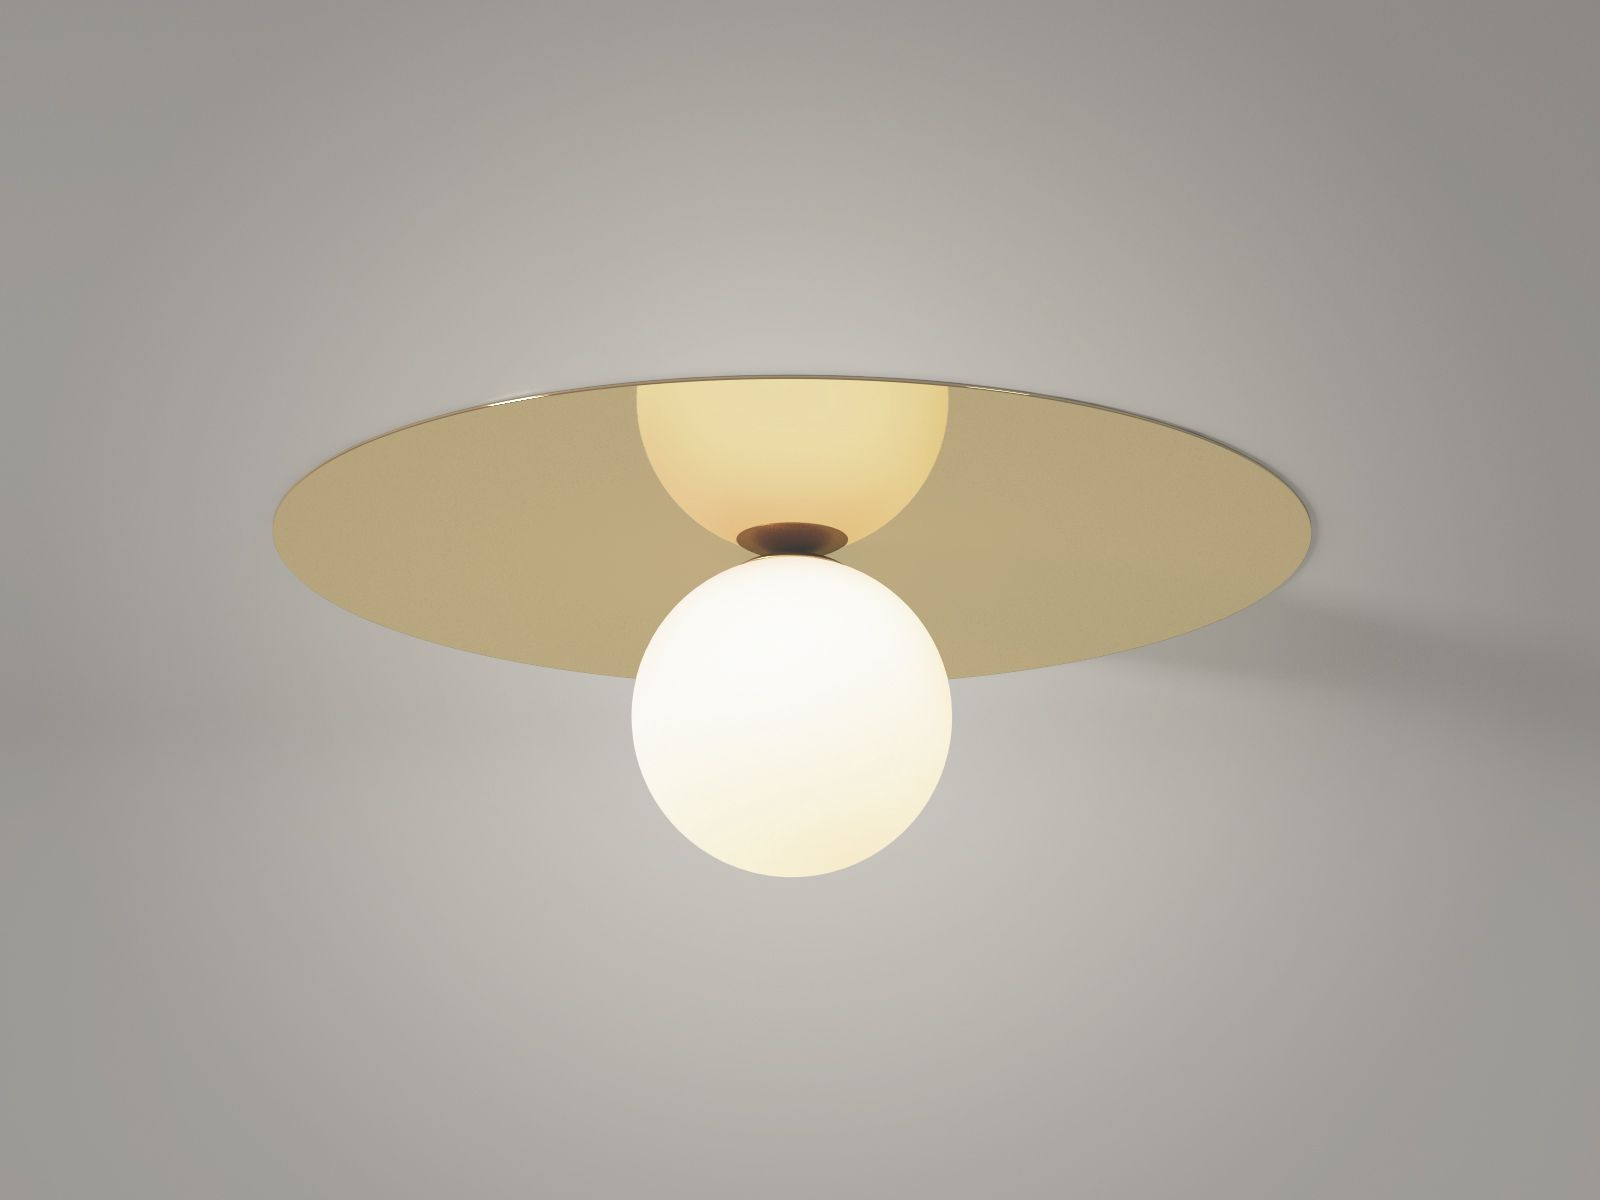 Very cool mid century modern sleek flush mount light Lighting